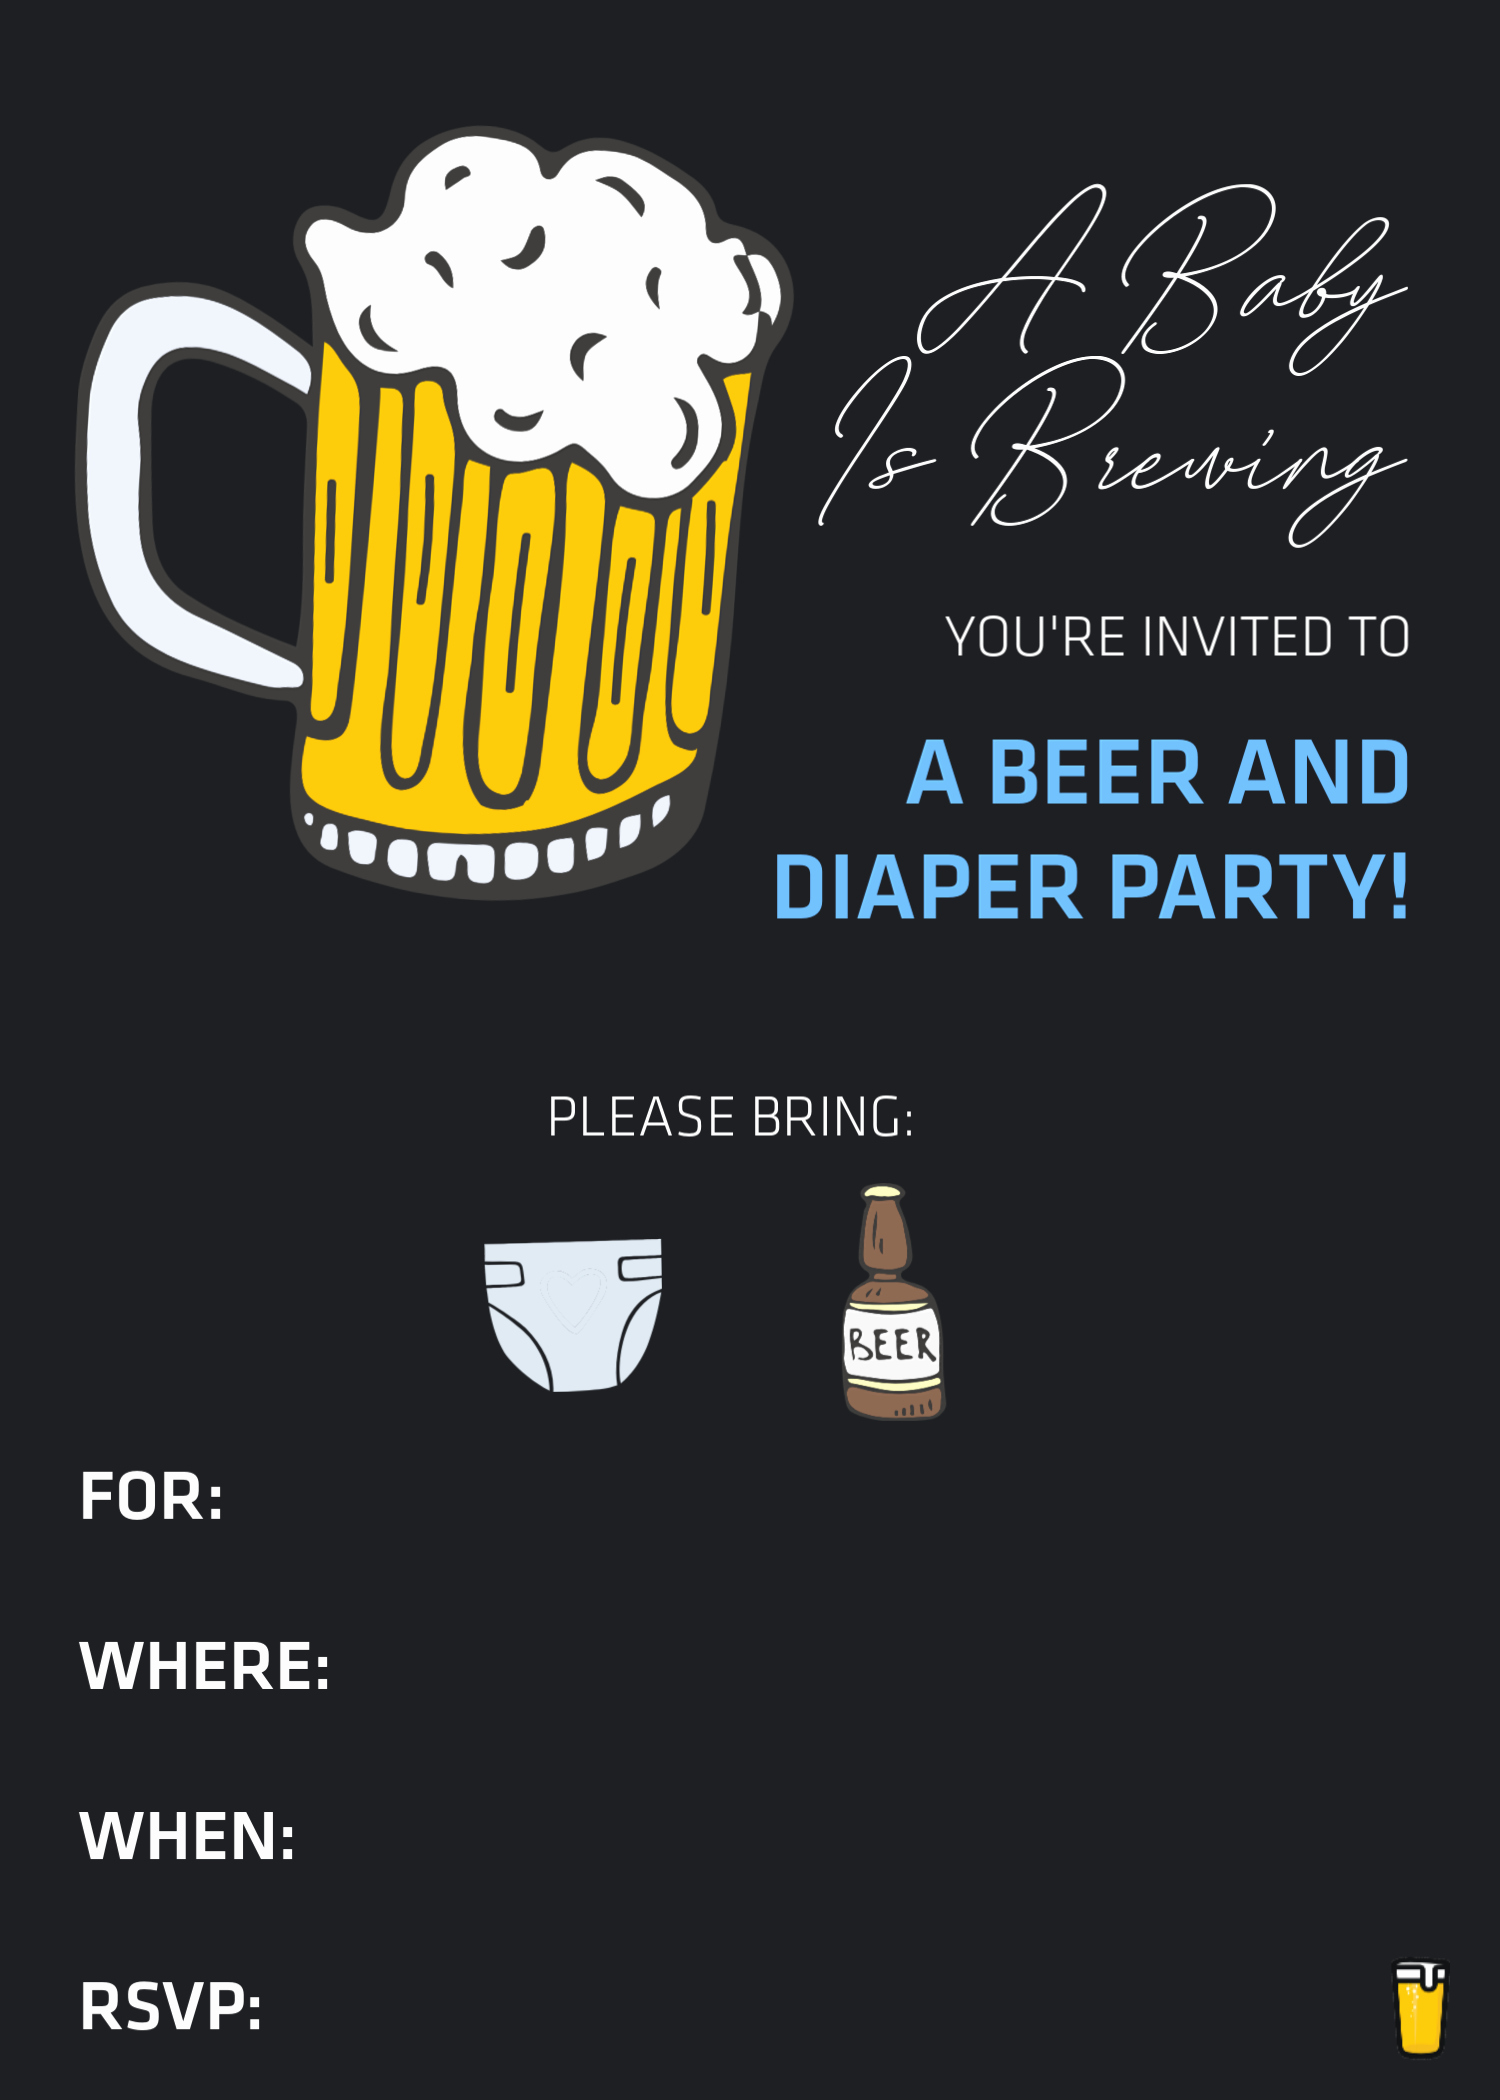 Diaper Party Invitation Templates Free Lovely How to Throw A Beer & Diaper Party – the Best Dad Baby